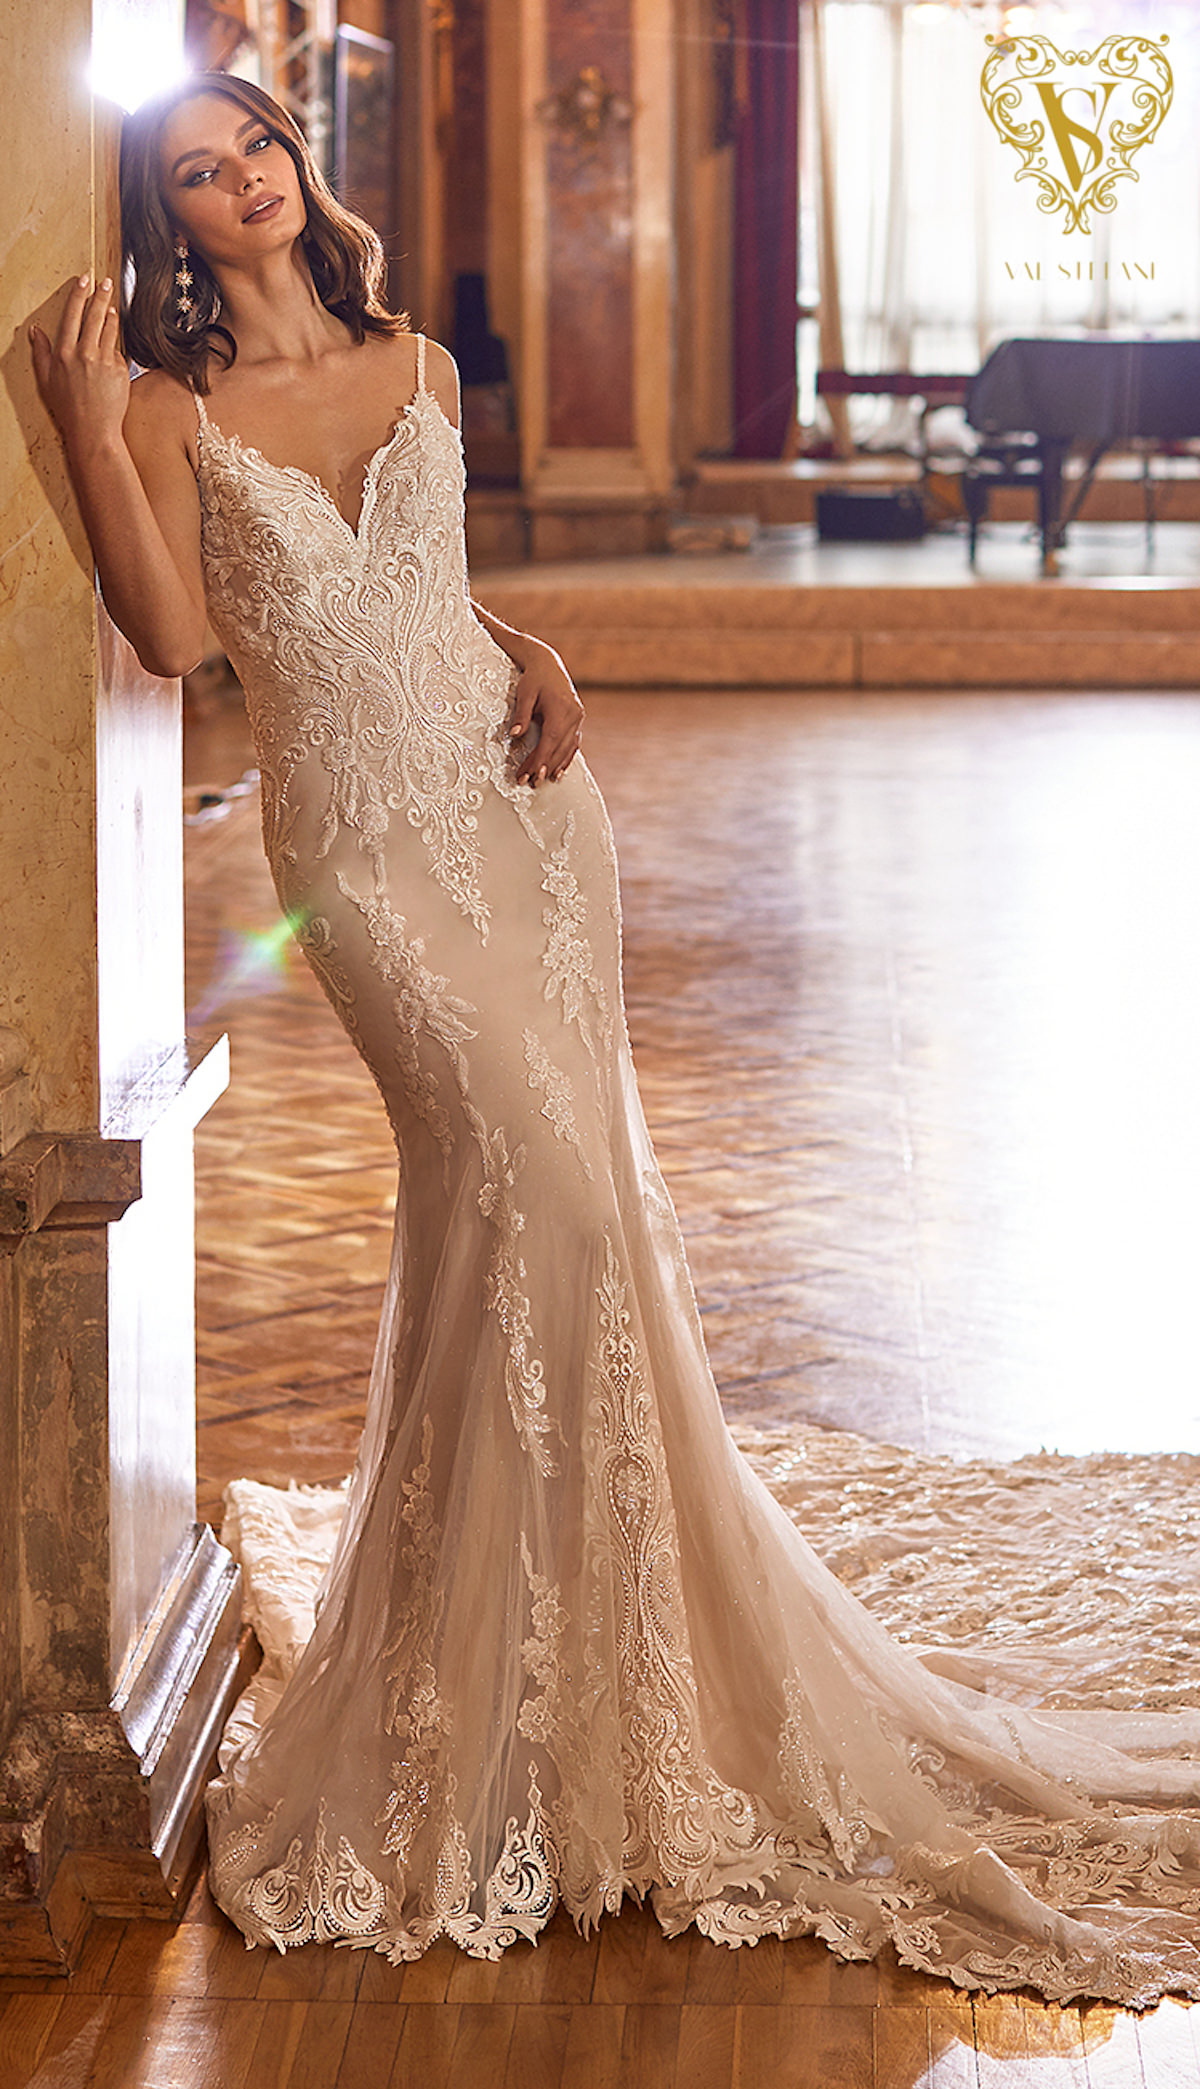 Val Stefani Wedding Dresses Fall 2021 - Opus Collection - Dolce - Style D8274